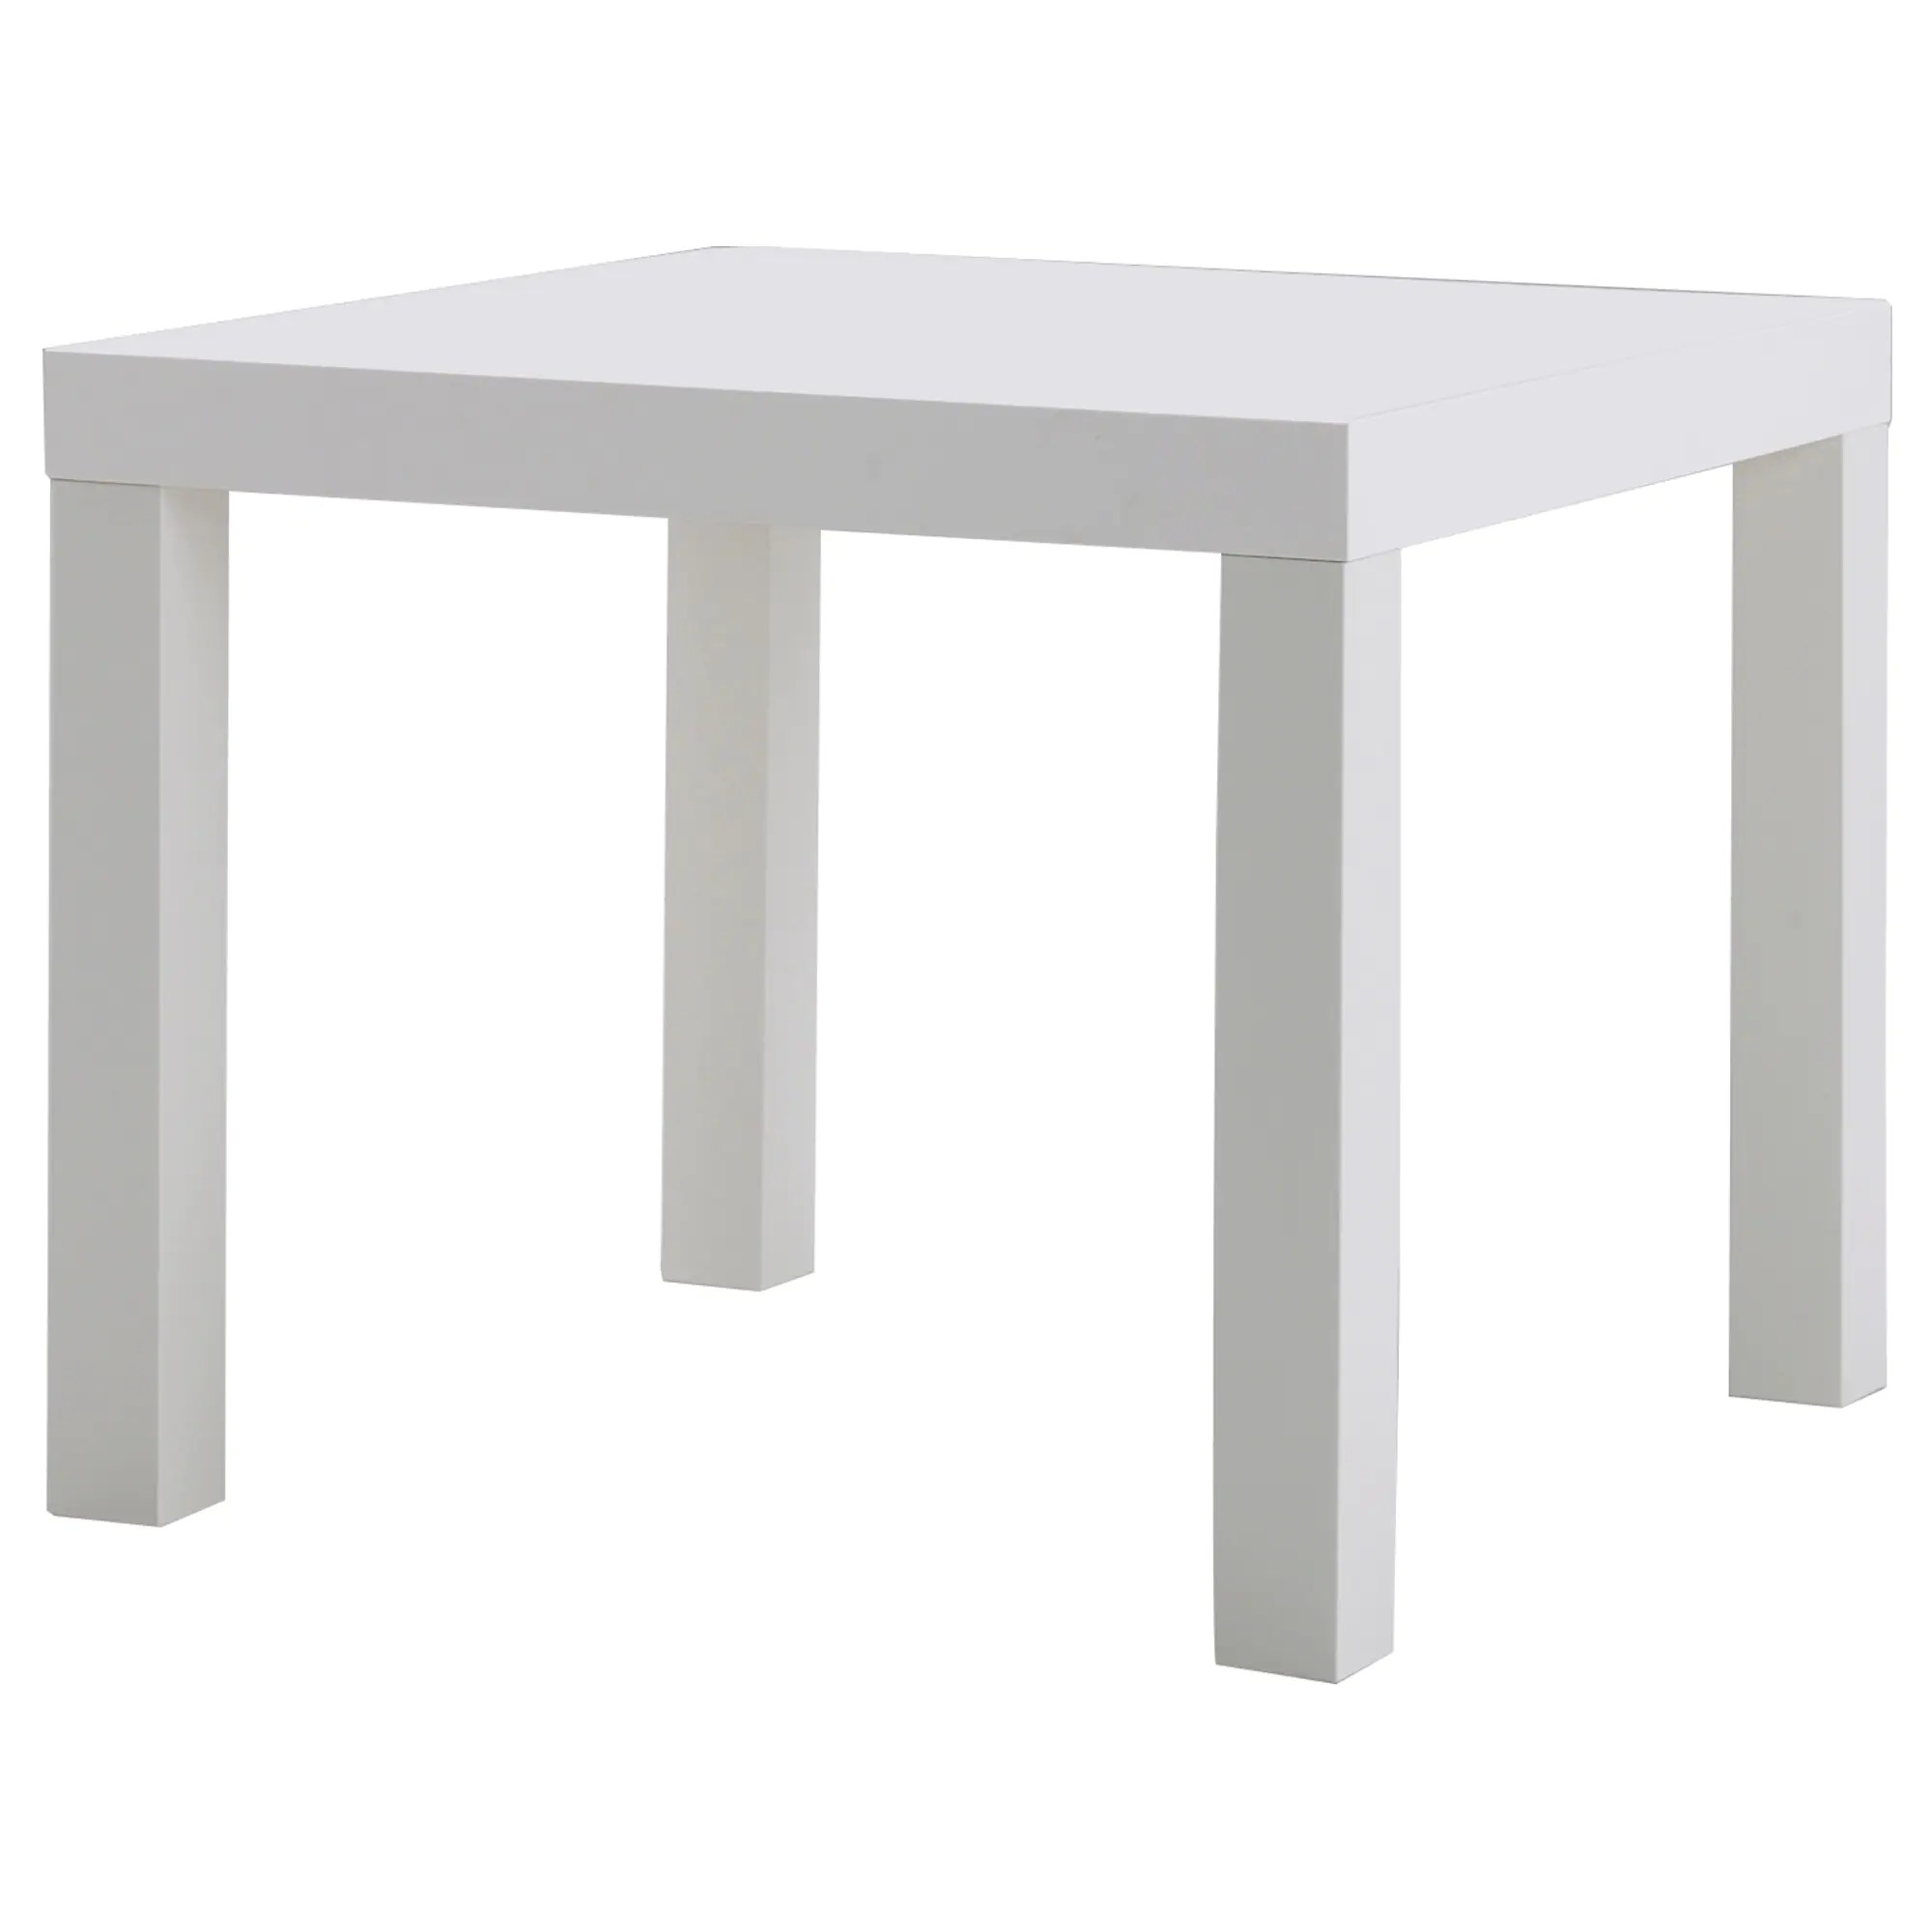 Ikea Table Lack Side Table White